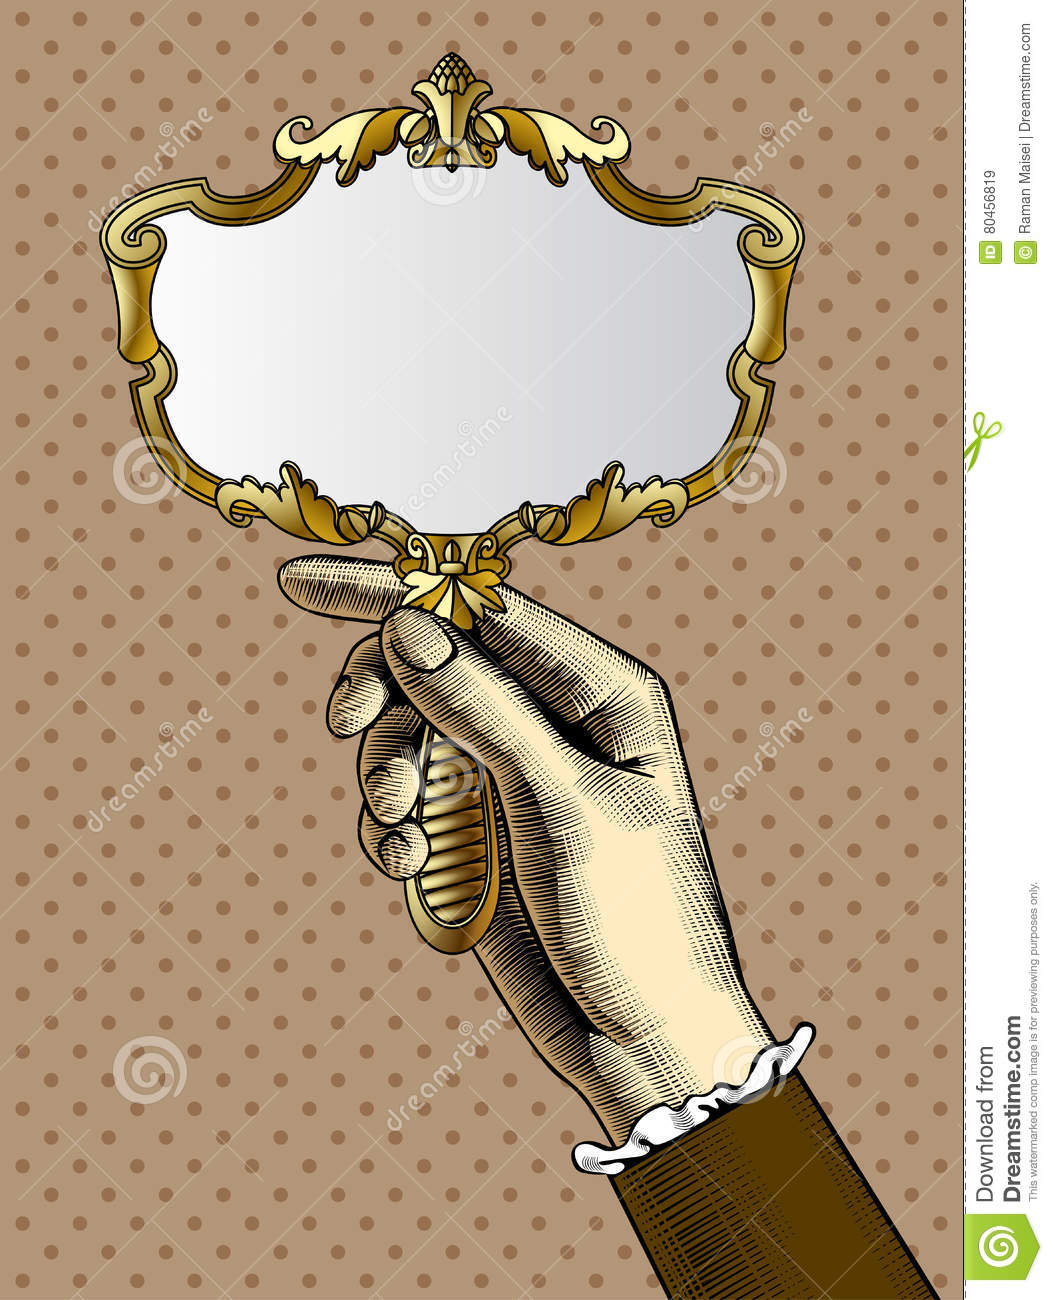 Antique Hand Mirror Drawing On Womans Hand With Gold Retro Mirror Hand With Gold Retro Mirror Stock Vector Illustration Of